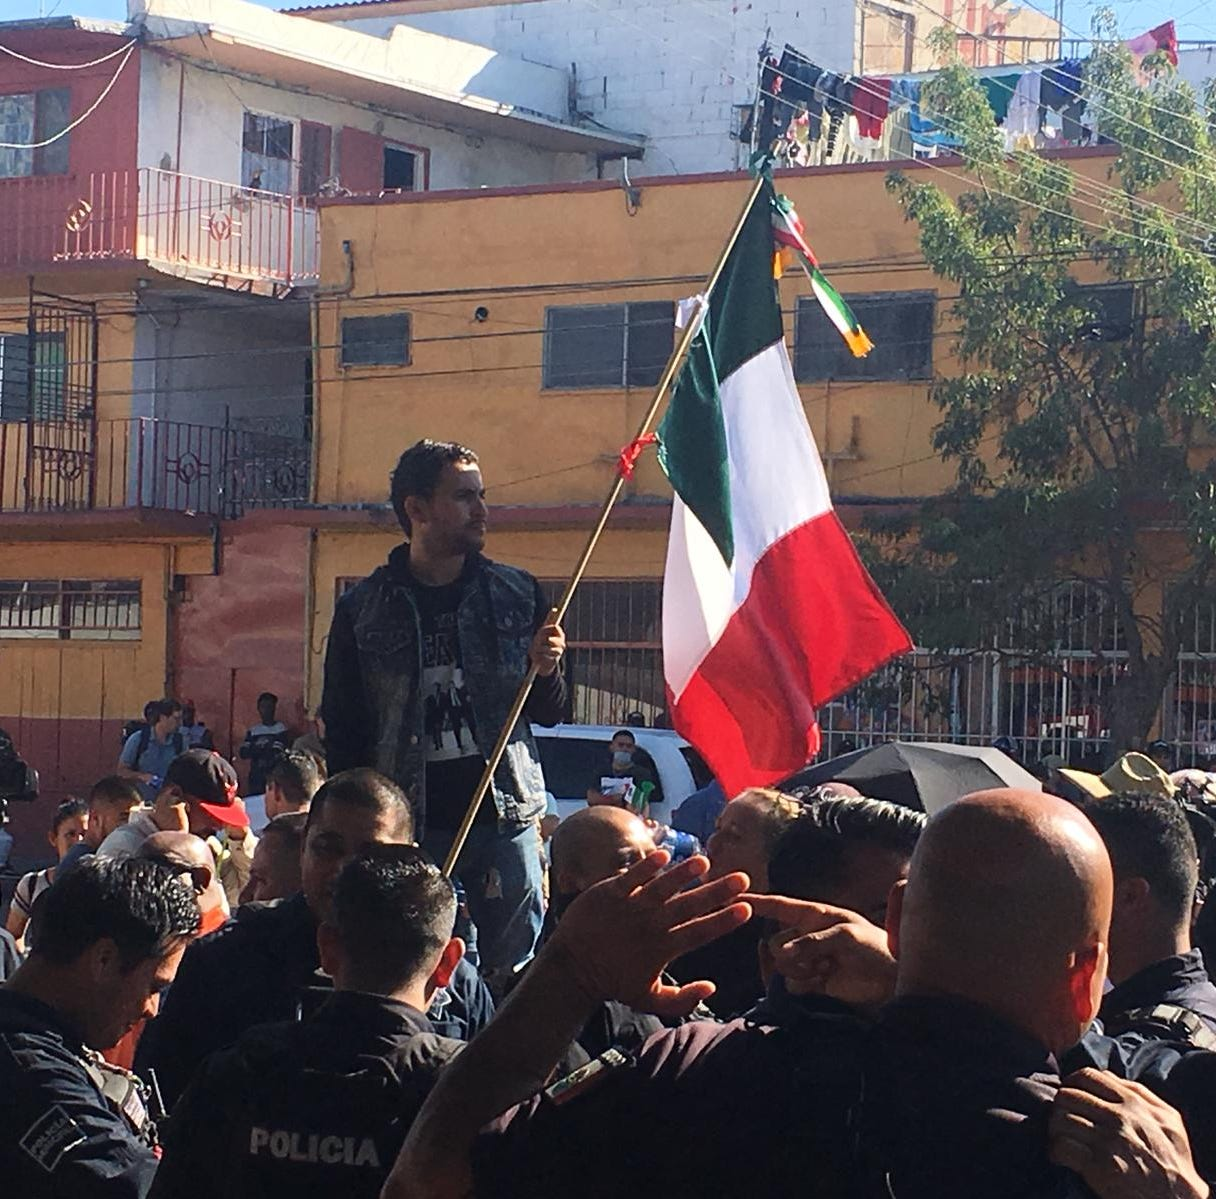 'This is not racism': Protesters march against migrant caravan in Tijuana